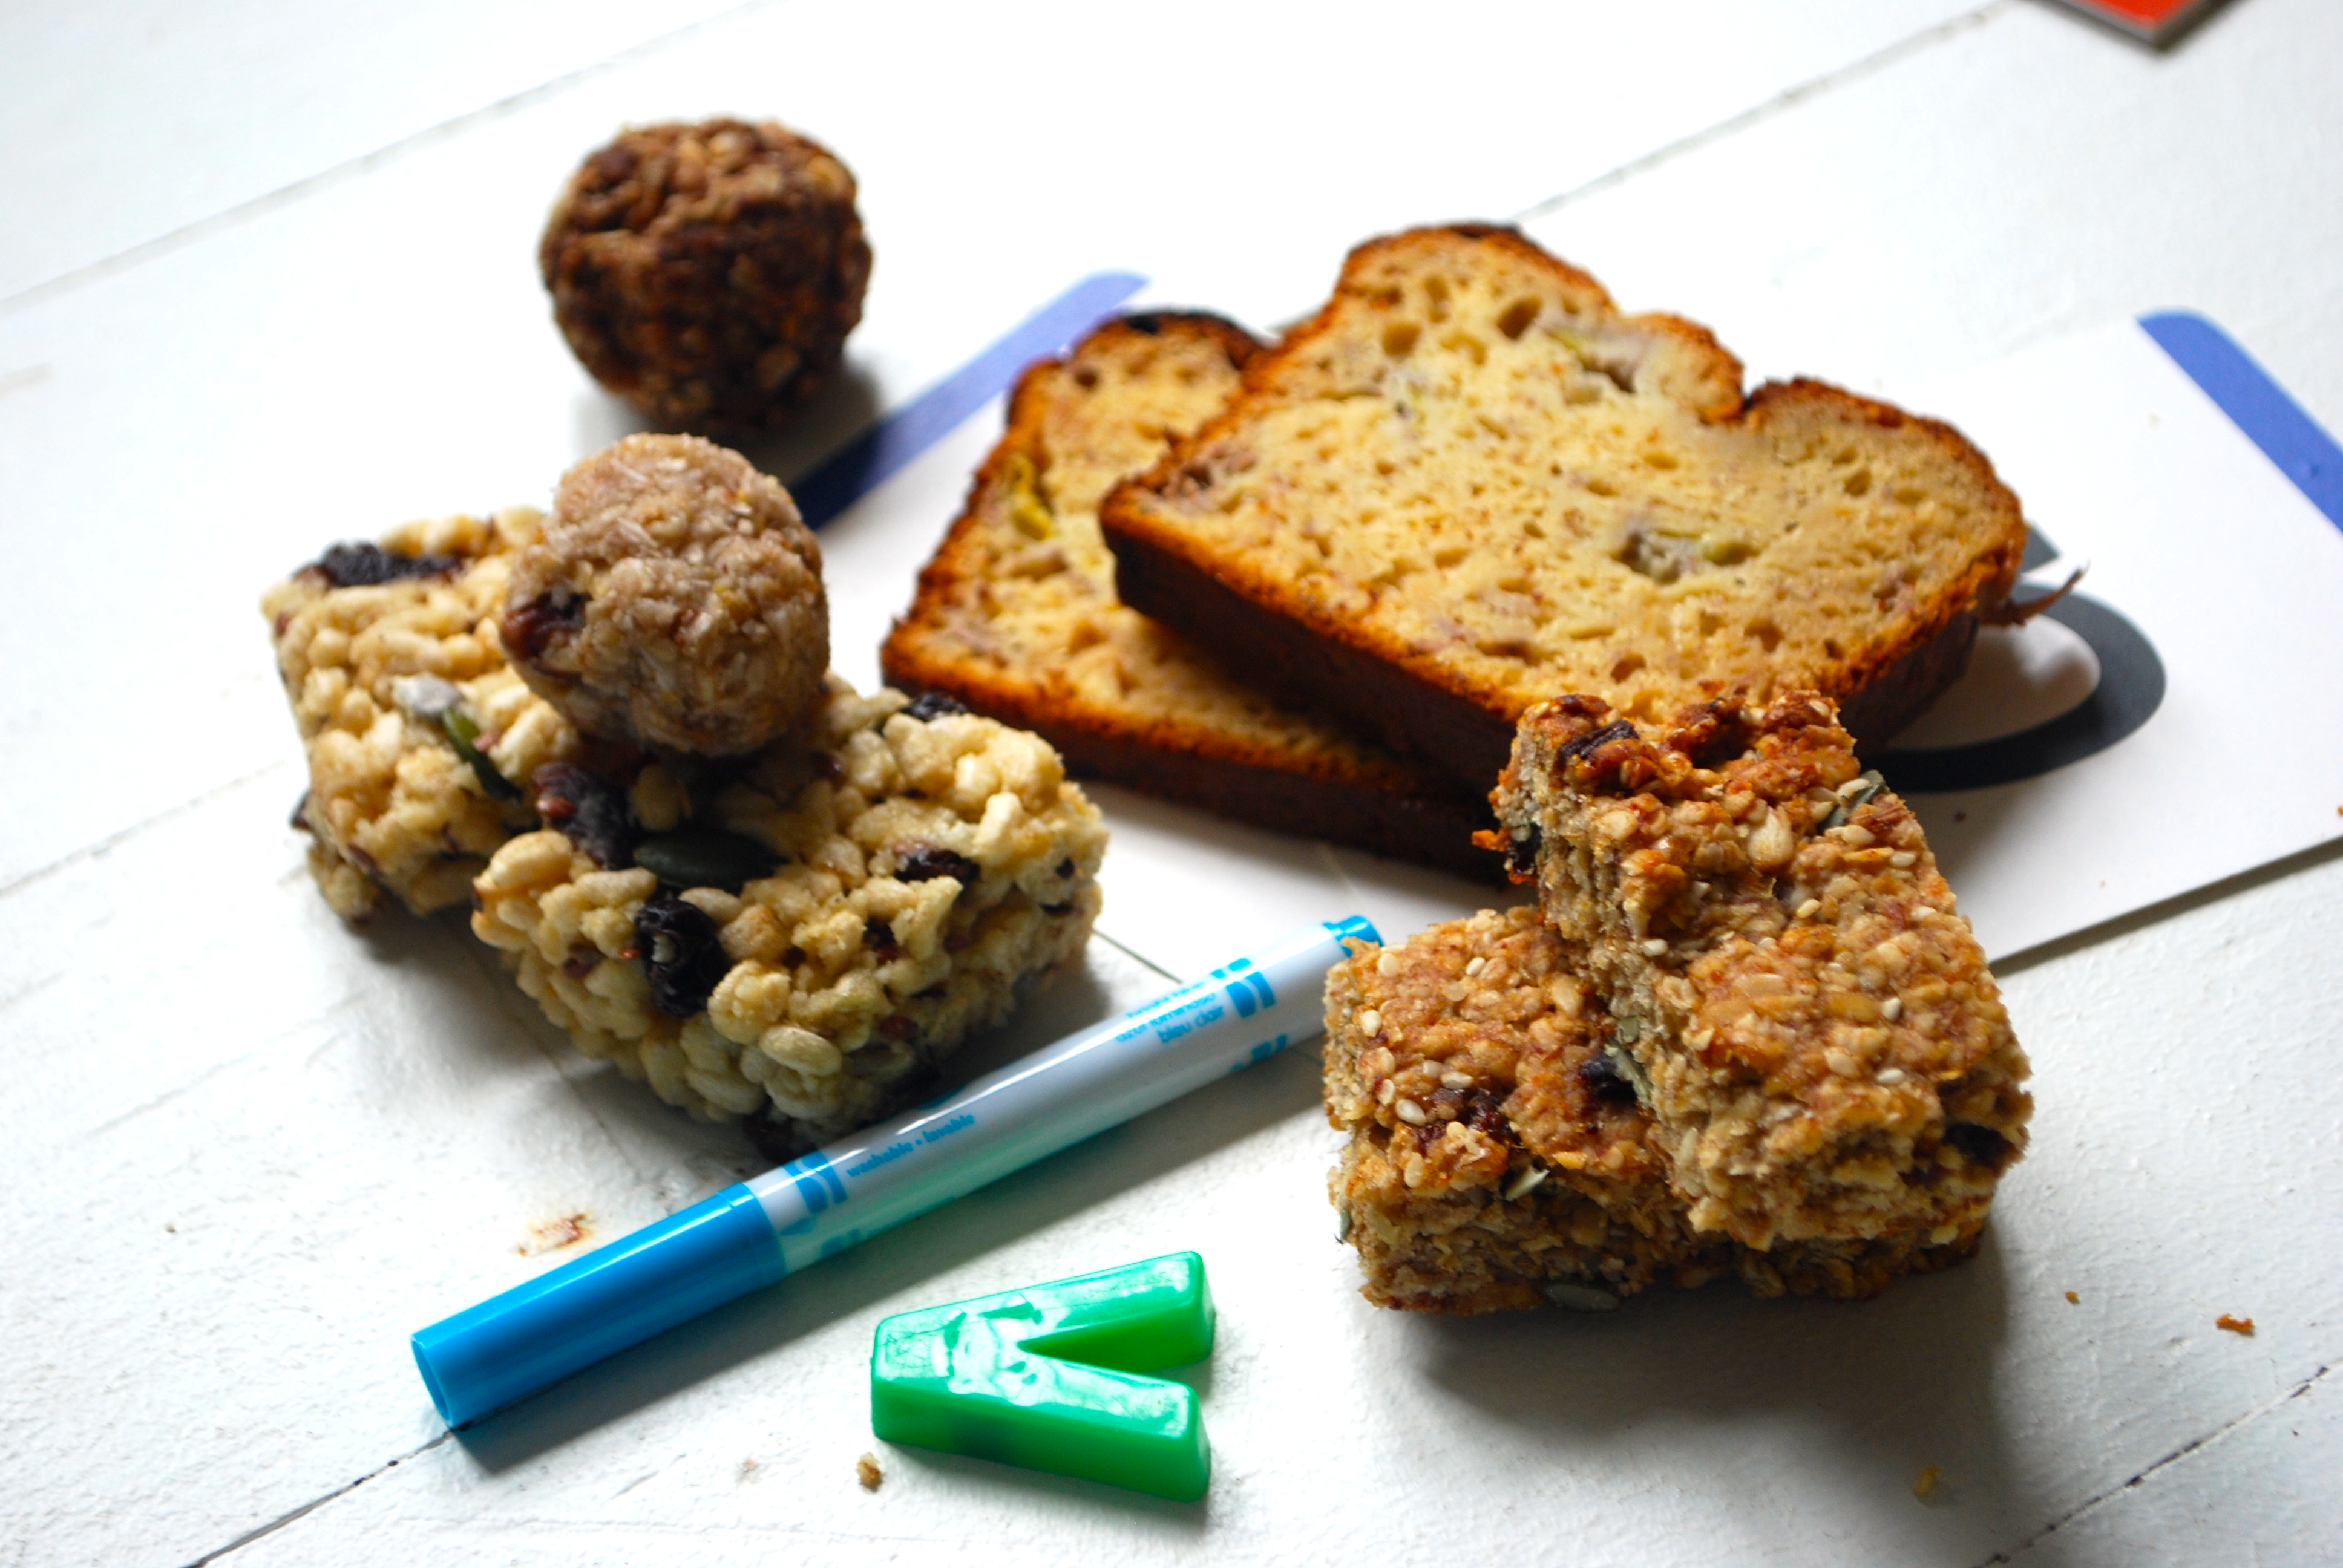 Banana bread and muffins